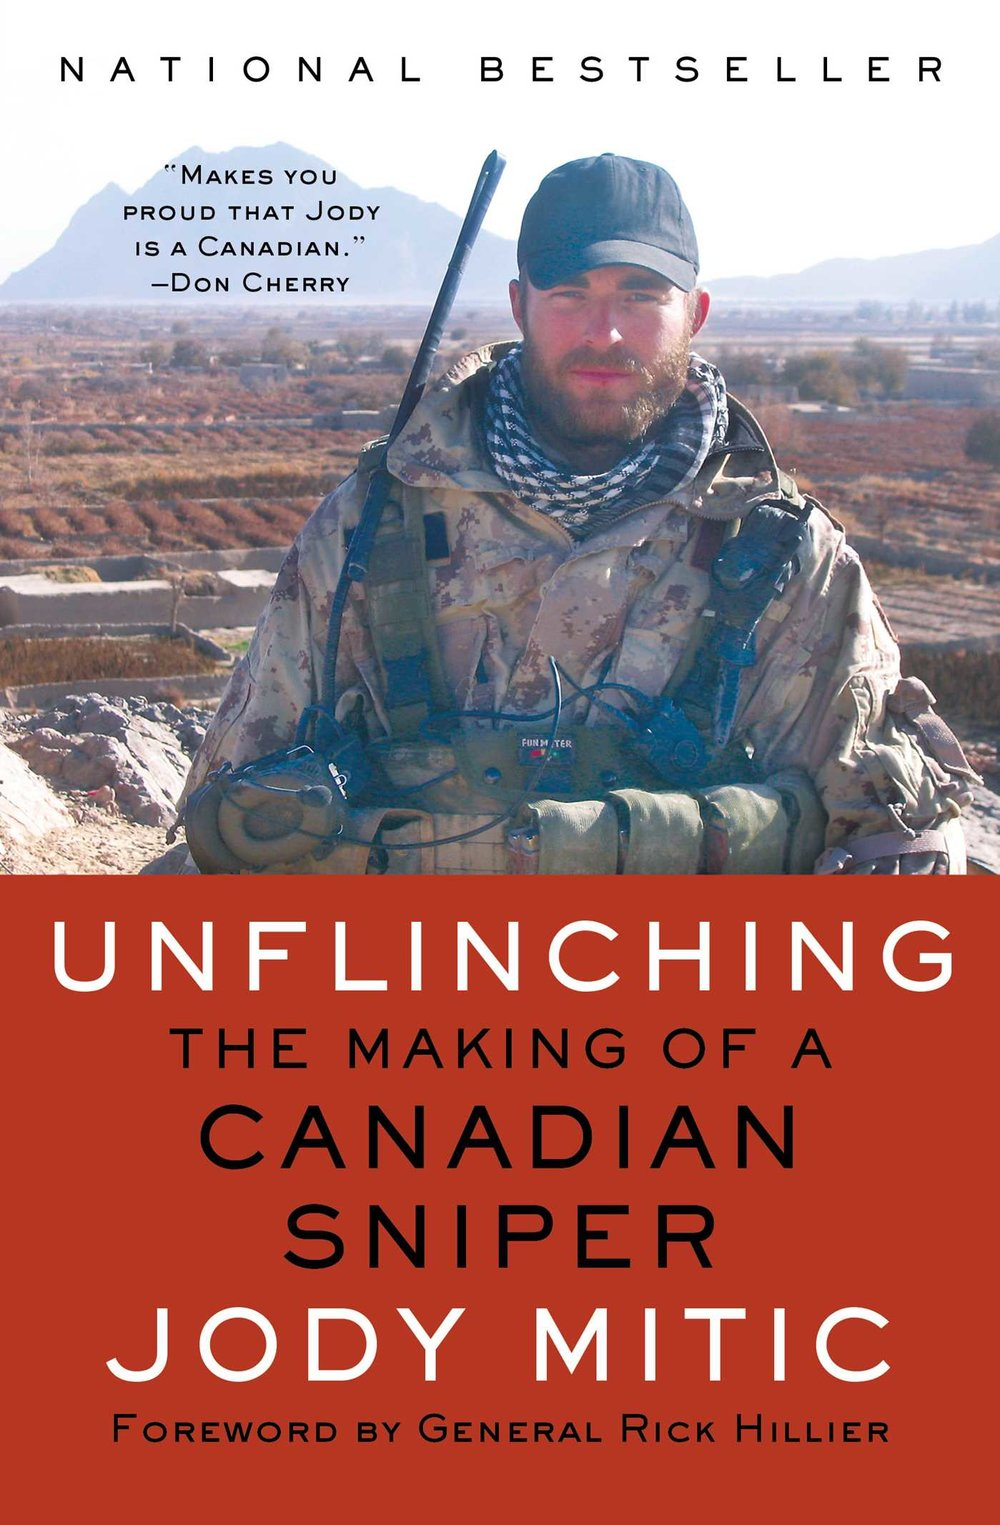 Unflinching by Jody Mitic